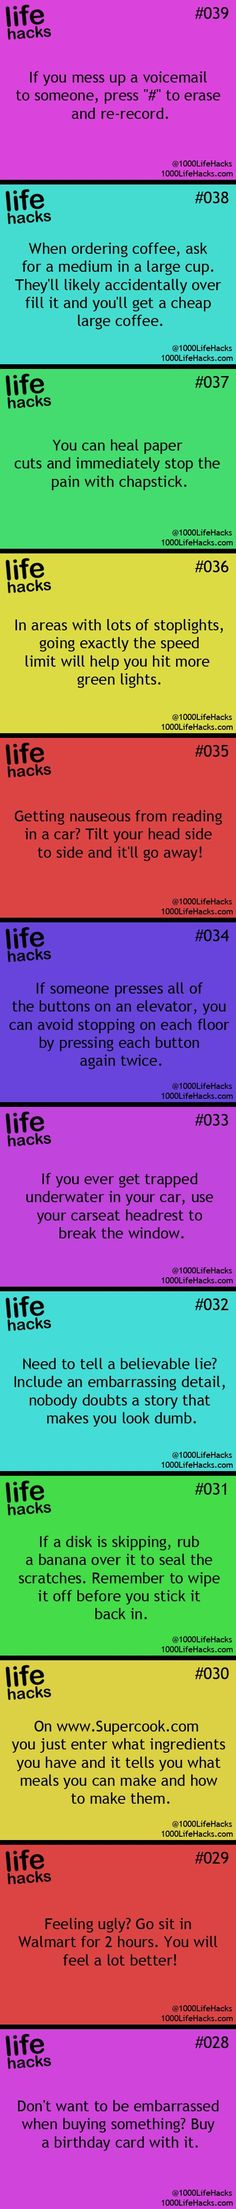 haha i know a few of these. life hacks